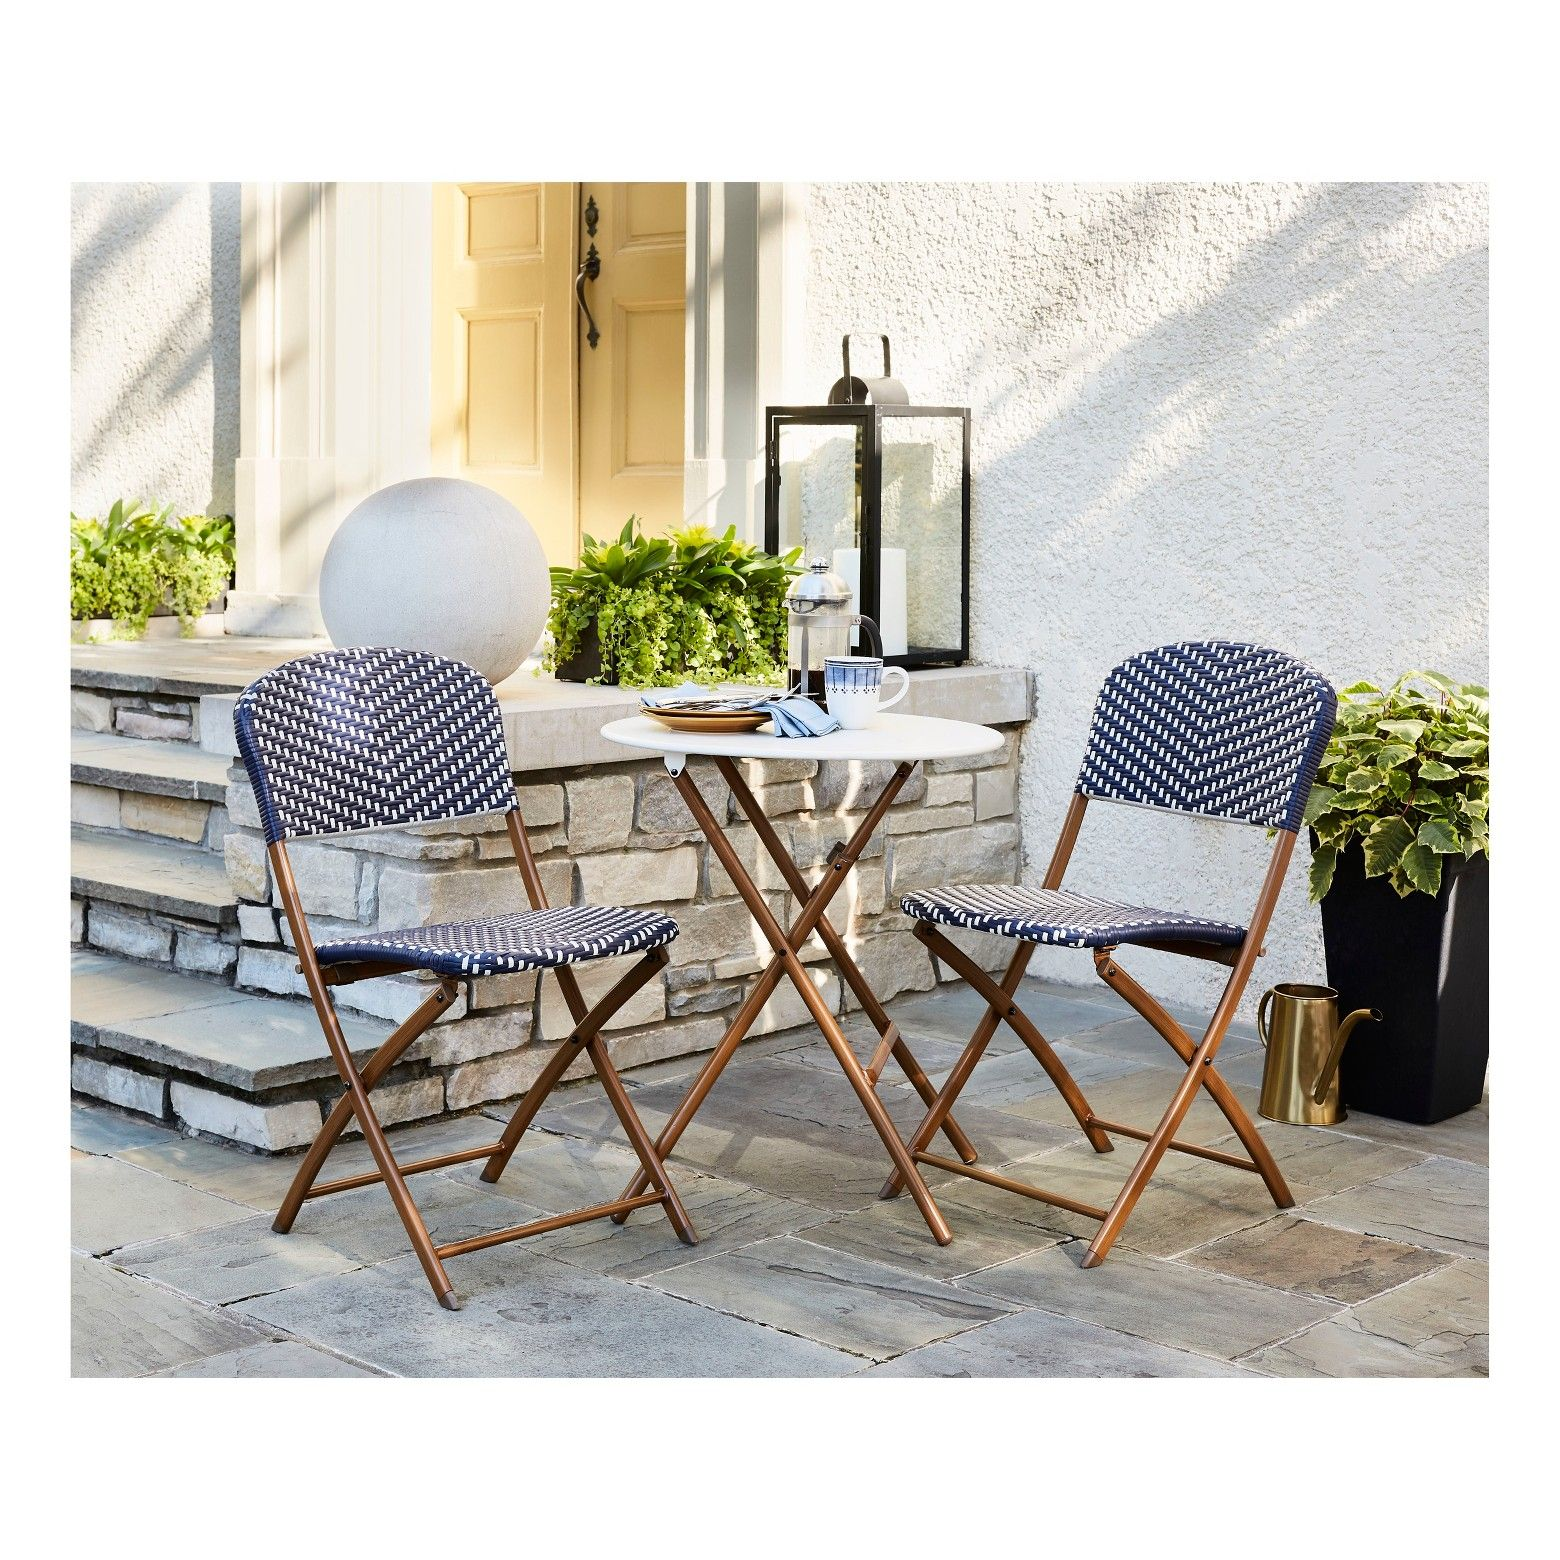 French Cafe 3pc Folding Patio Bistro Set Navy White Threshold Outdoor Patio Furniture Sets Bistro Patio Set Outdoor Bistro Set